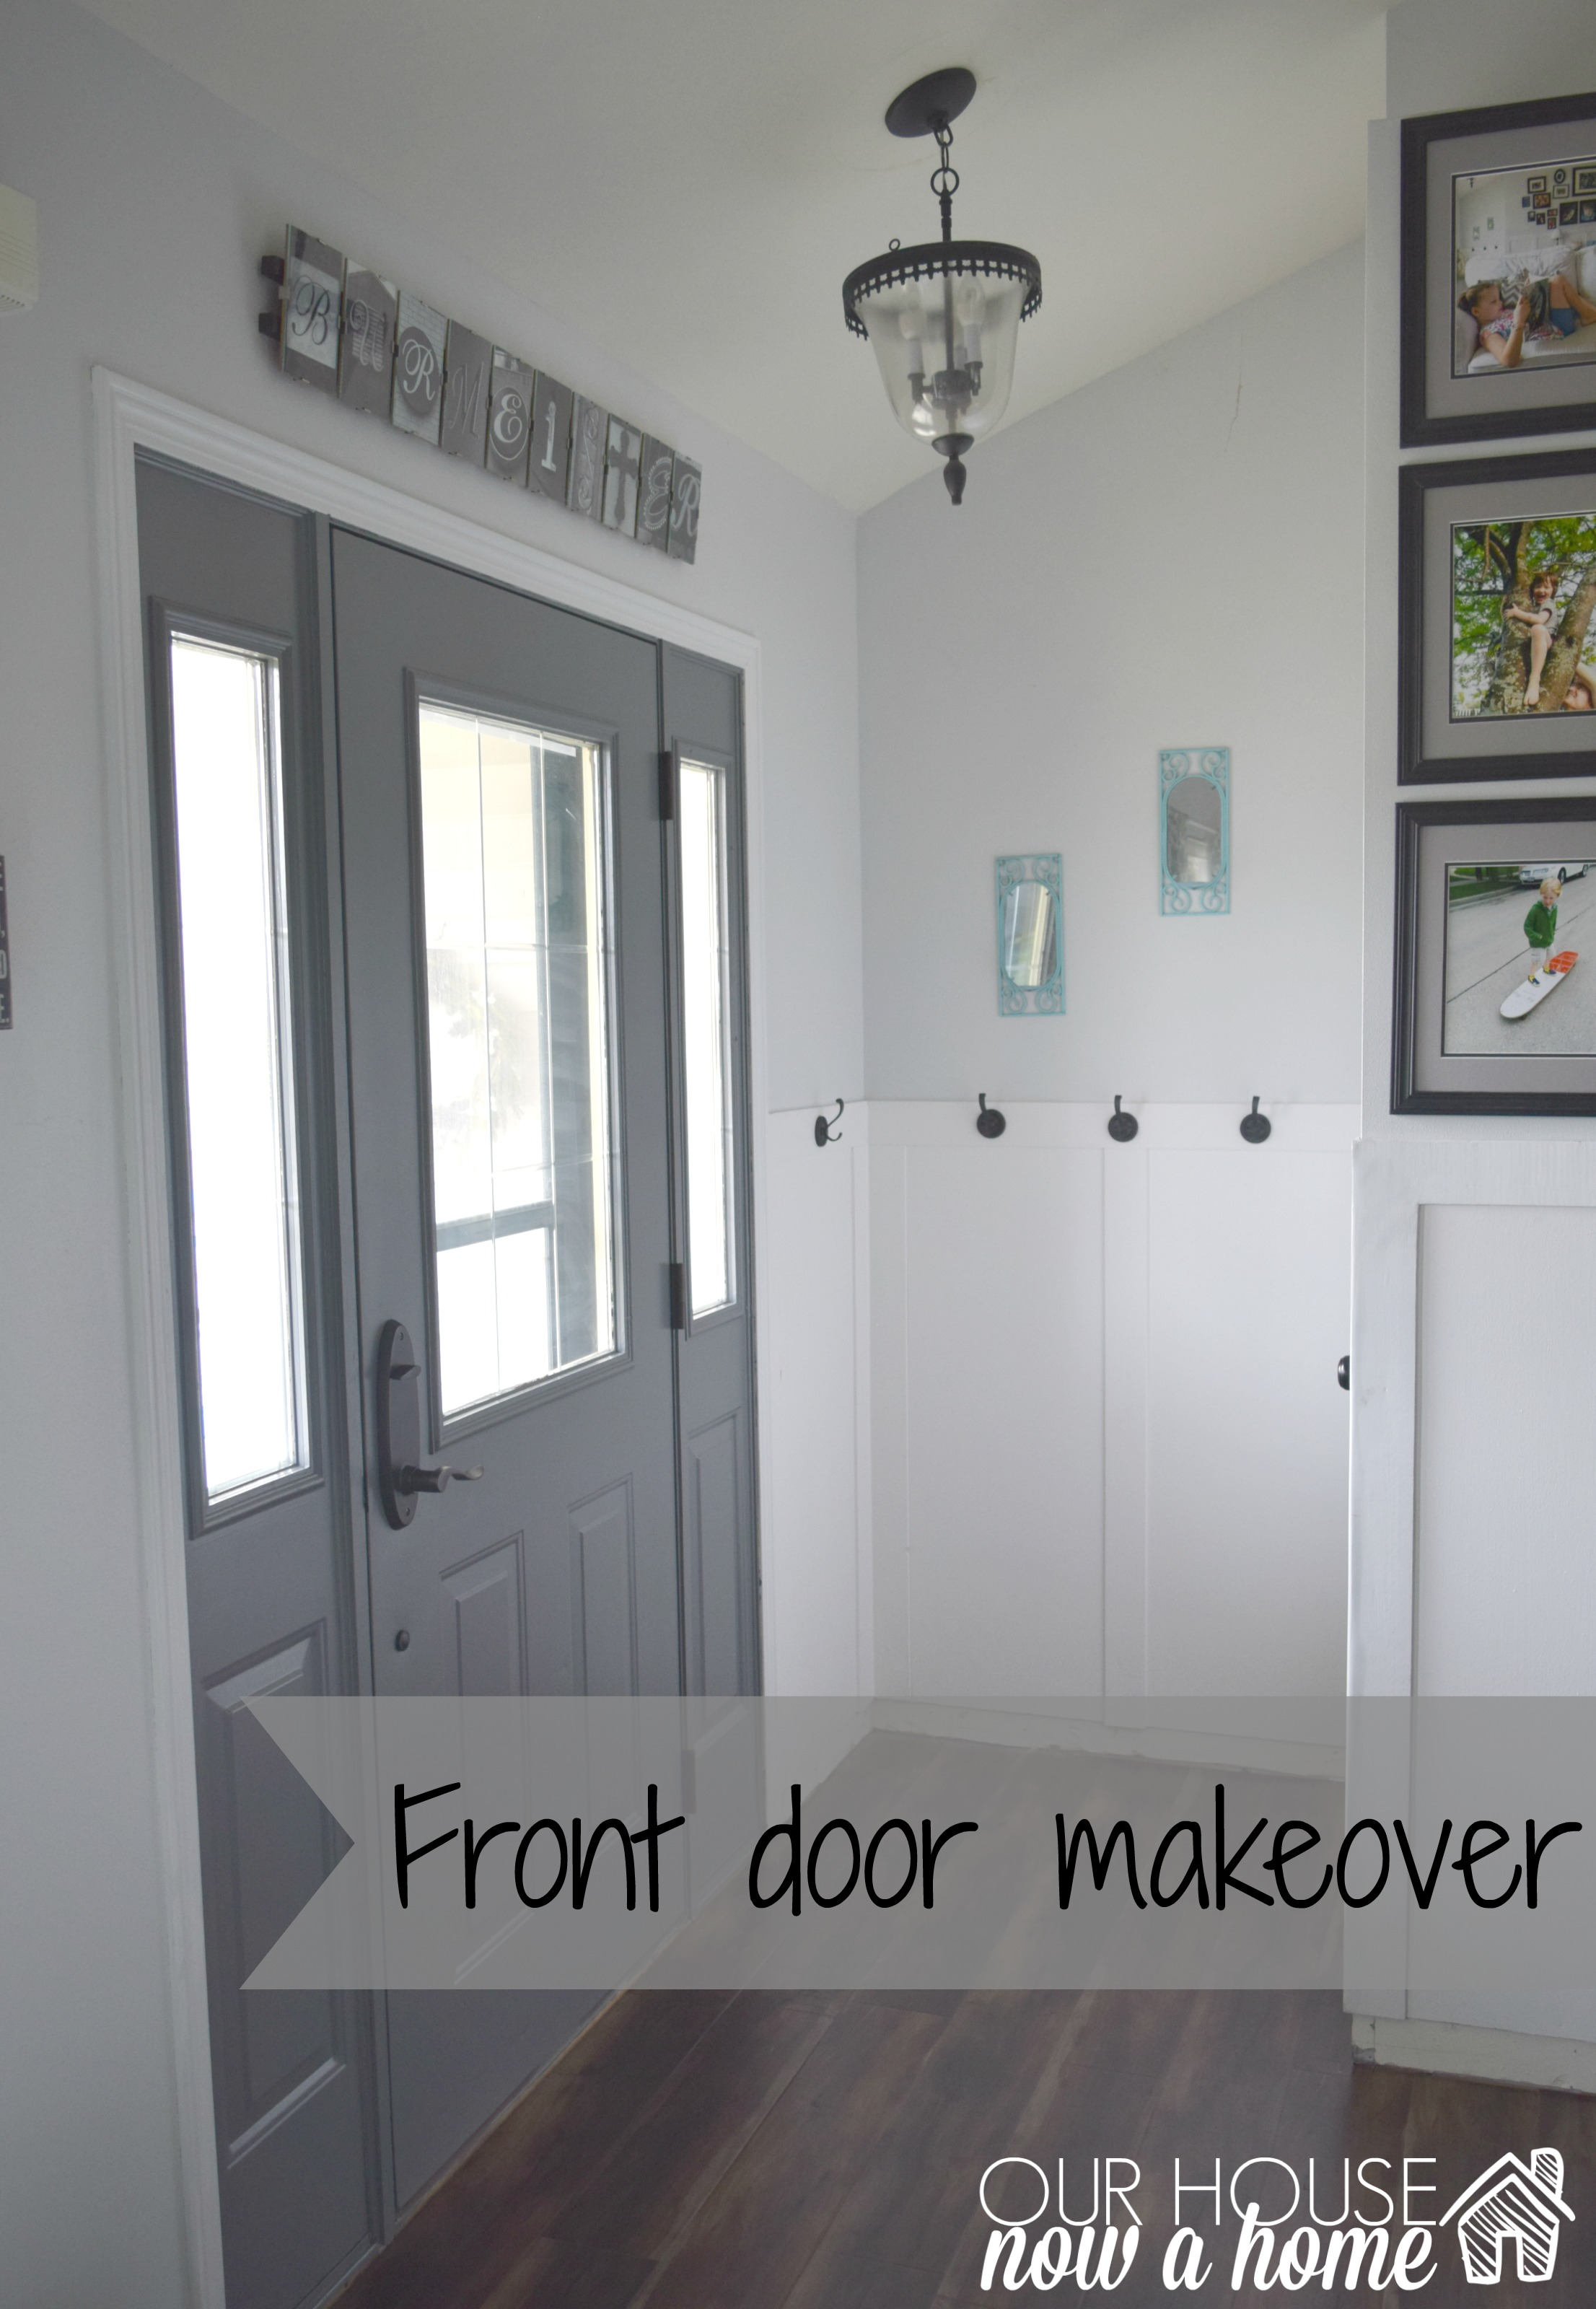 Superbe Front Door Makeover, How To Paint